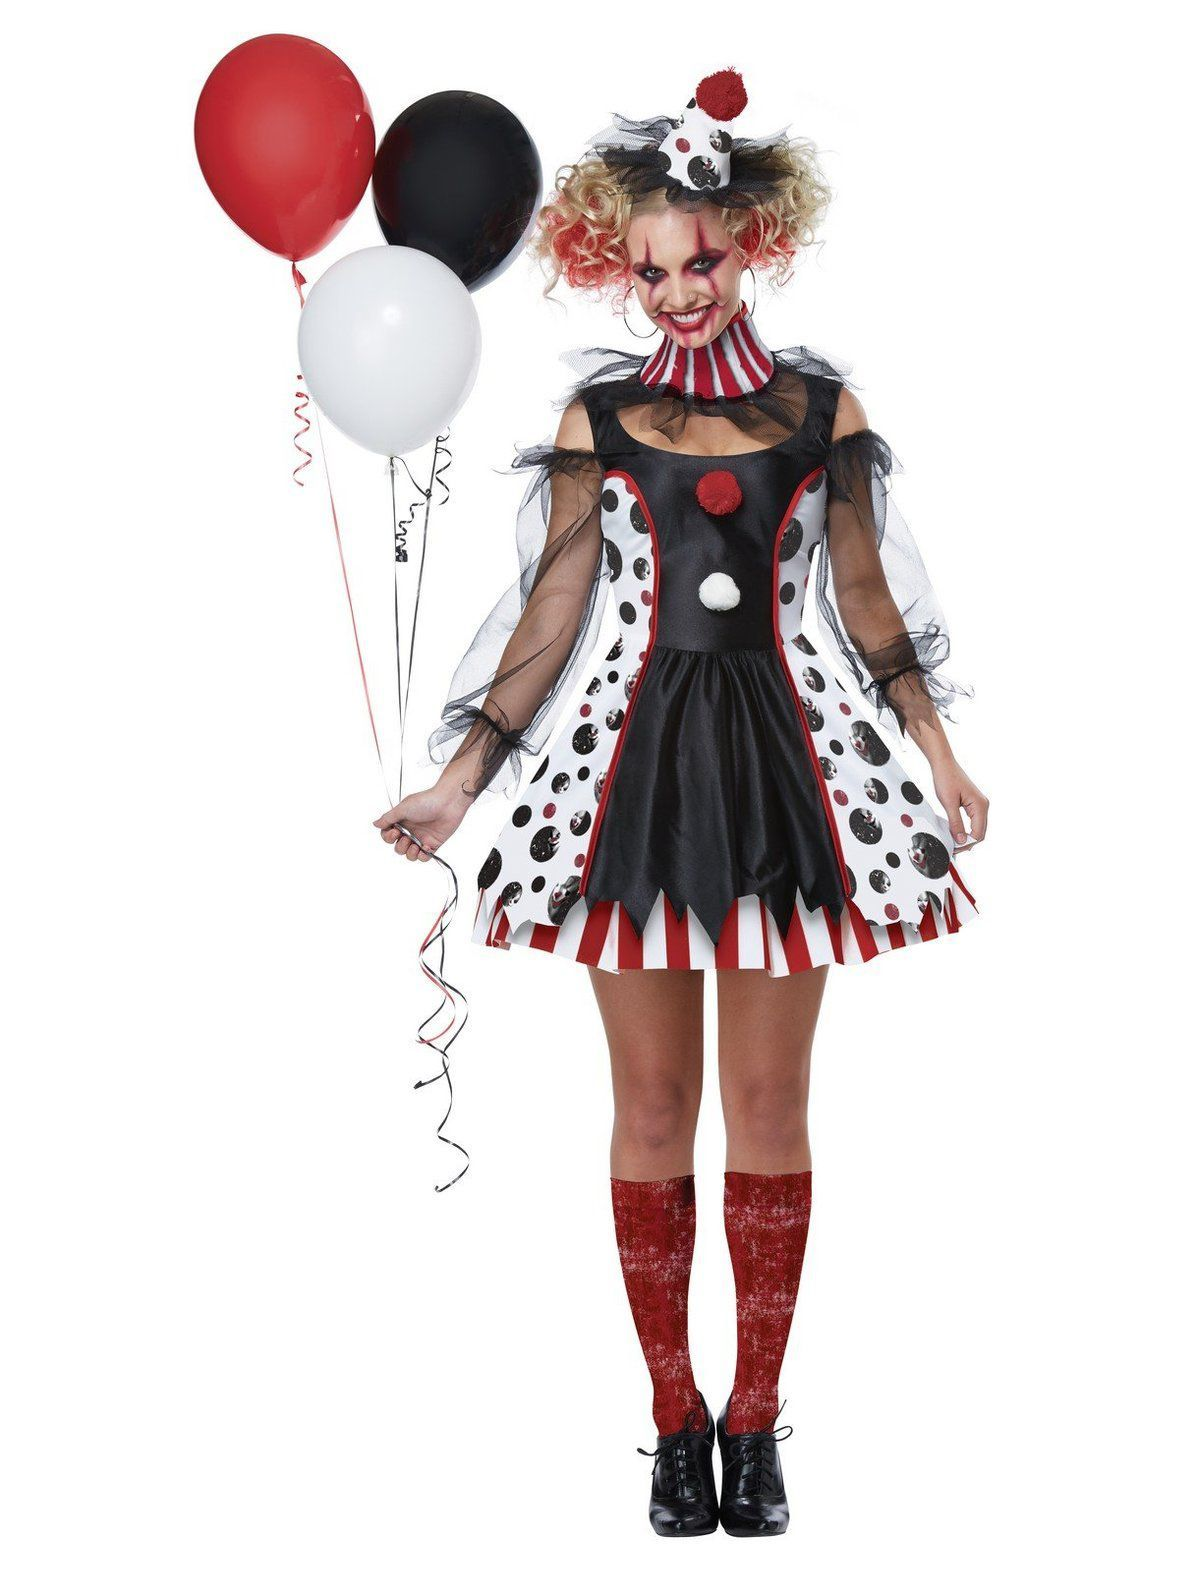 d2b09073bdef3 Women's Twisted Clown Costume in 2019   Halloween costumes   Clown ...